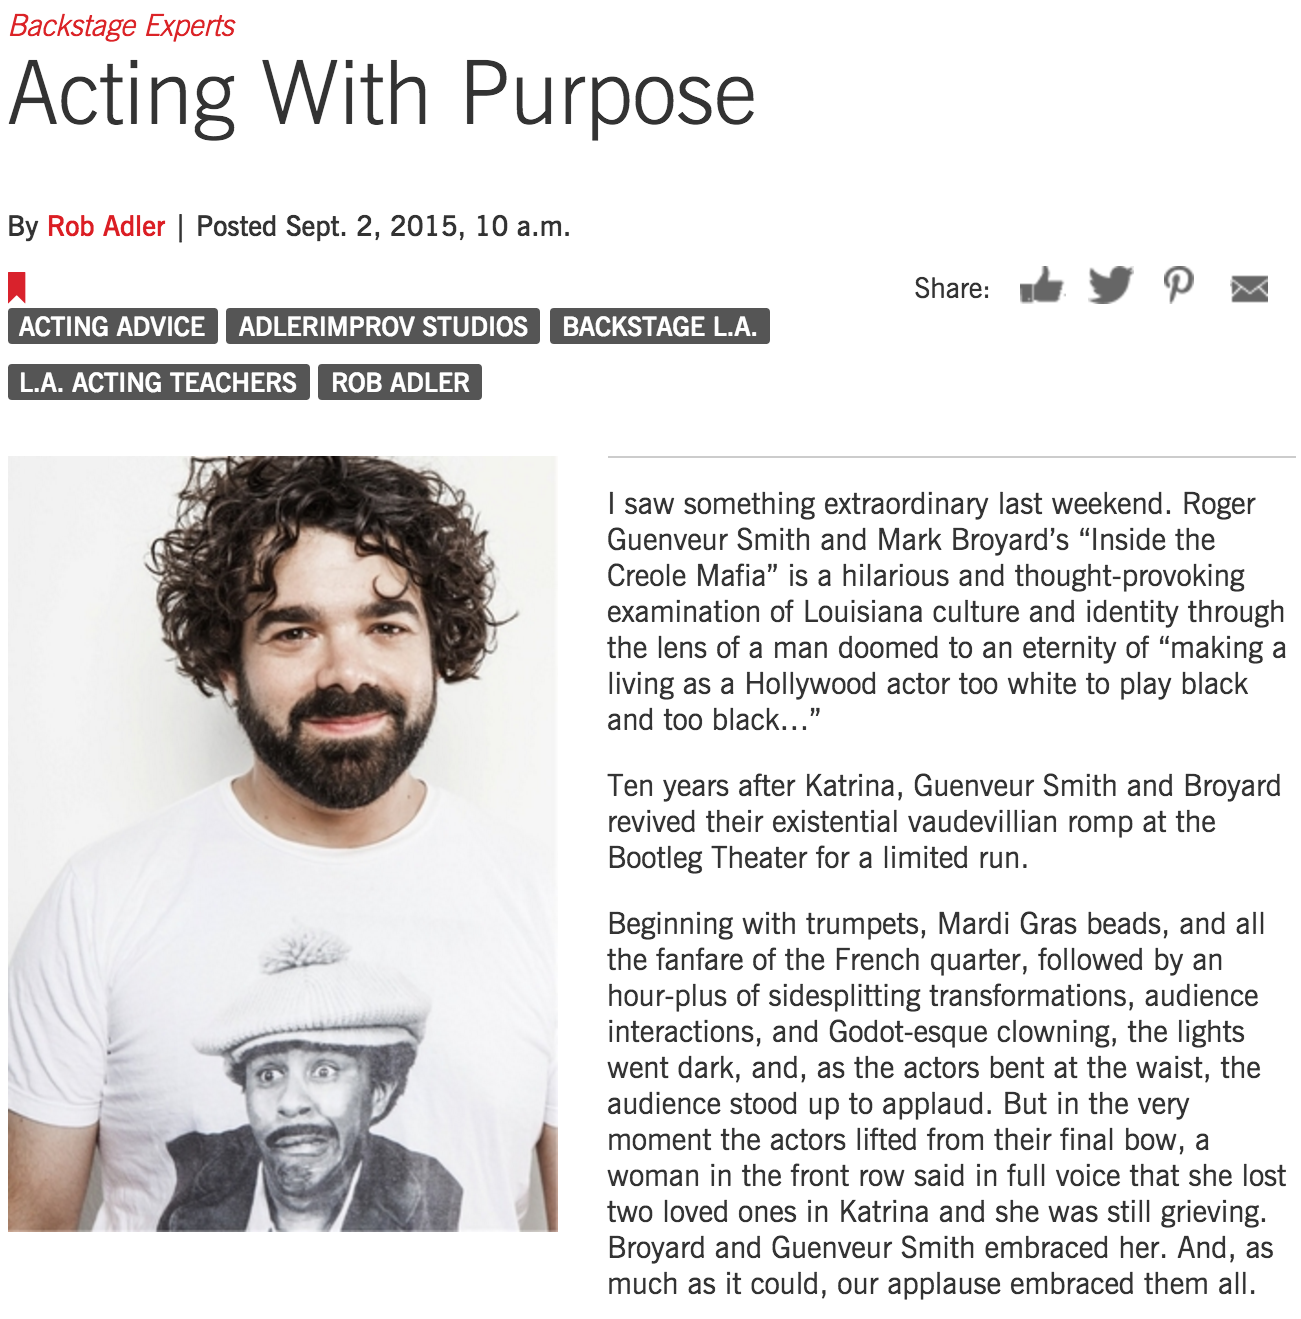 Acting With Purpose